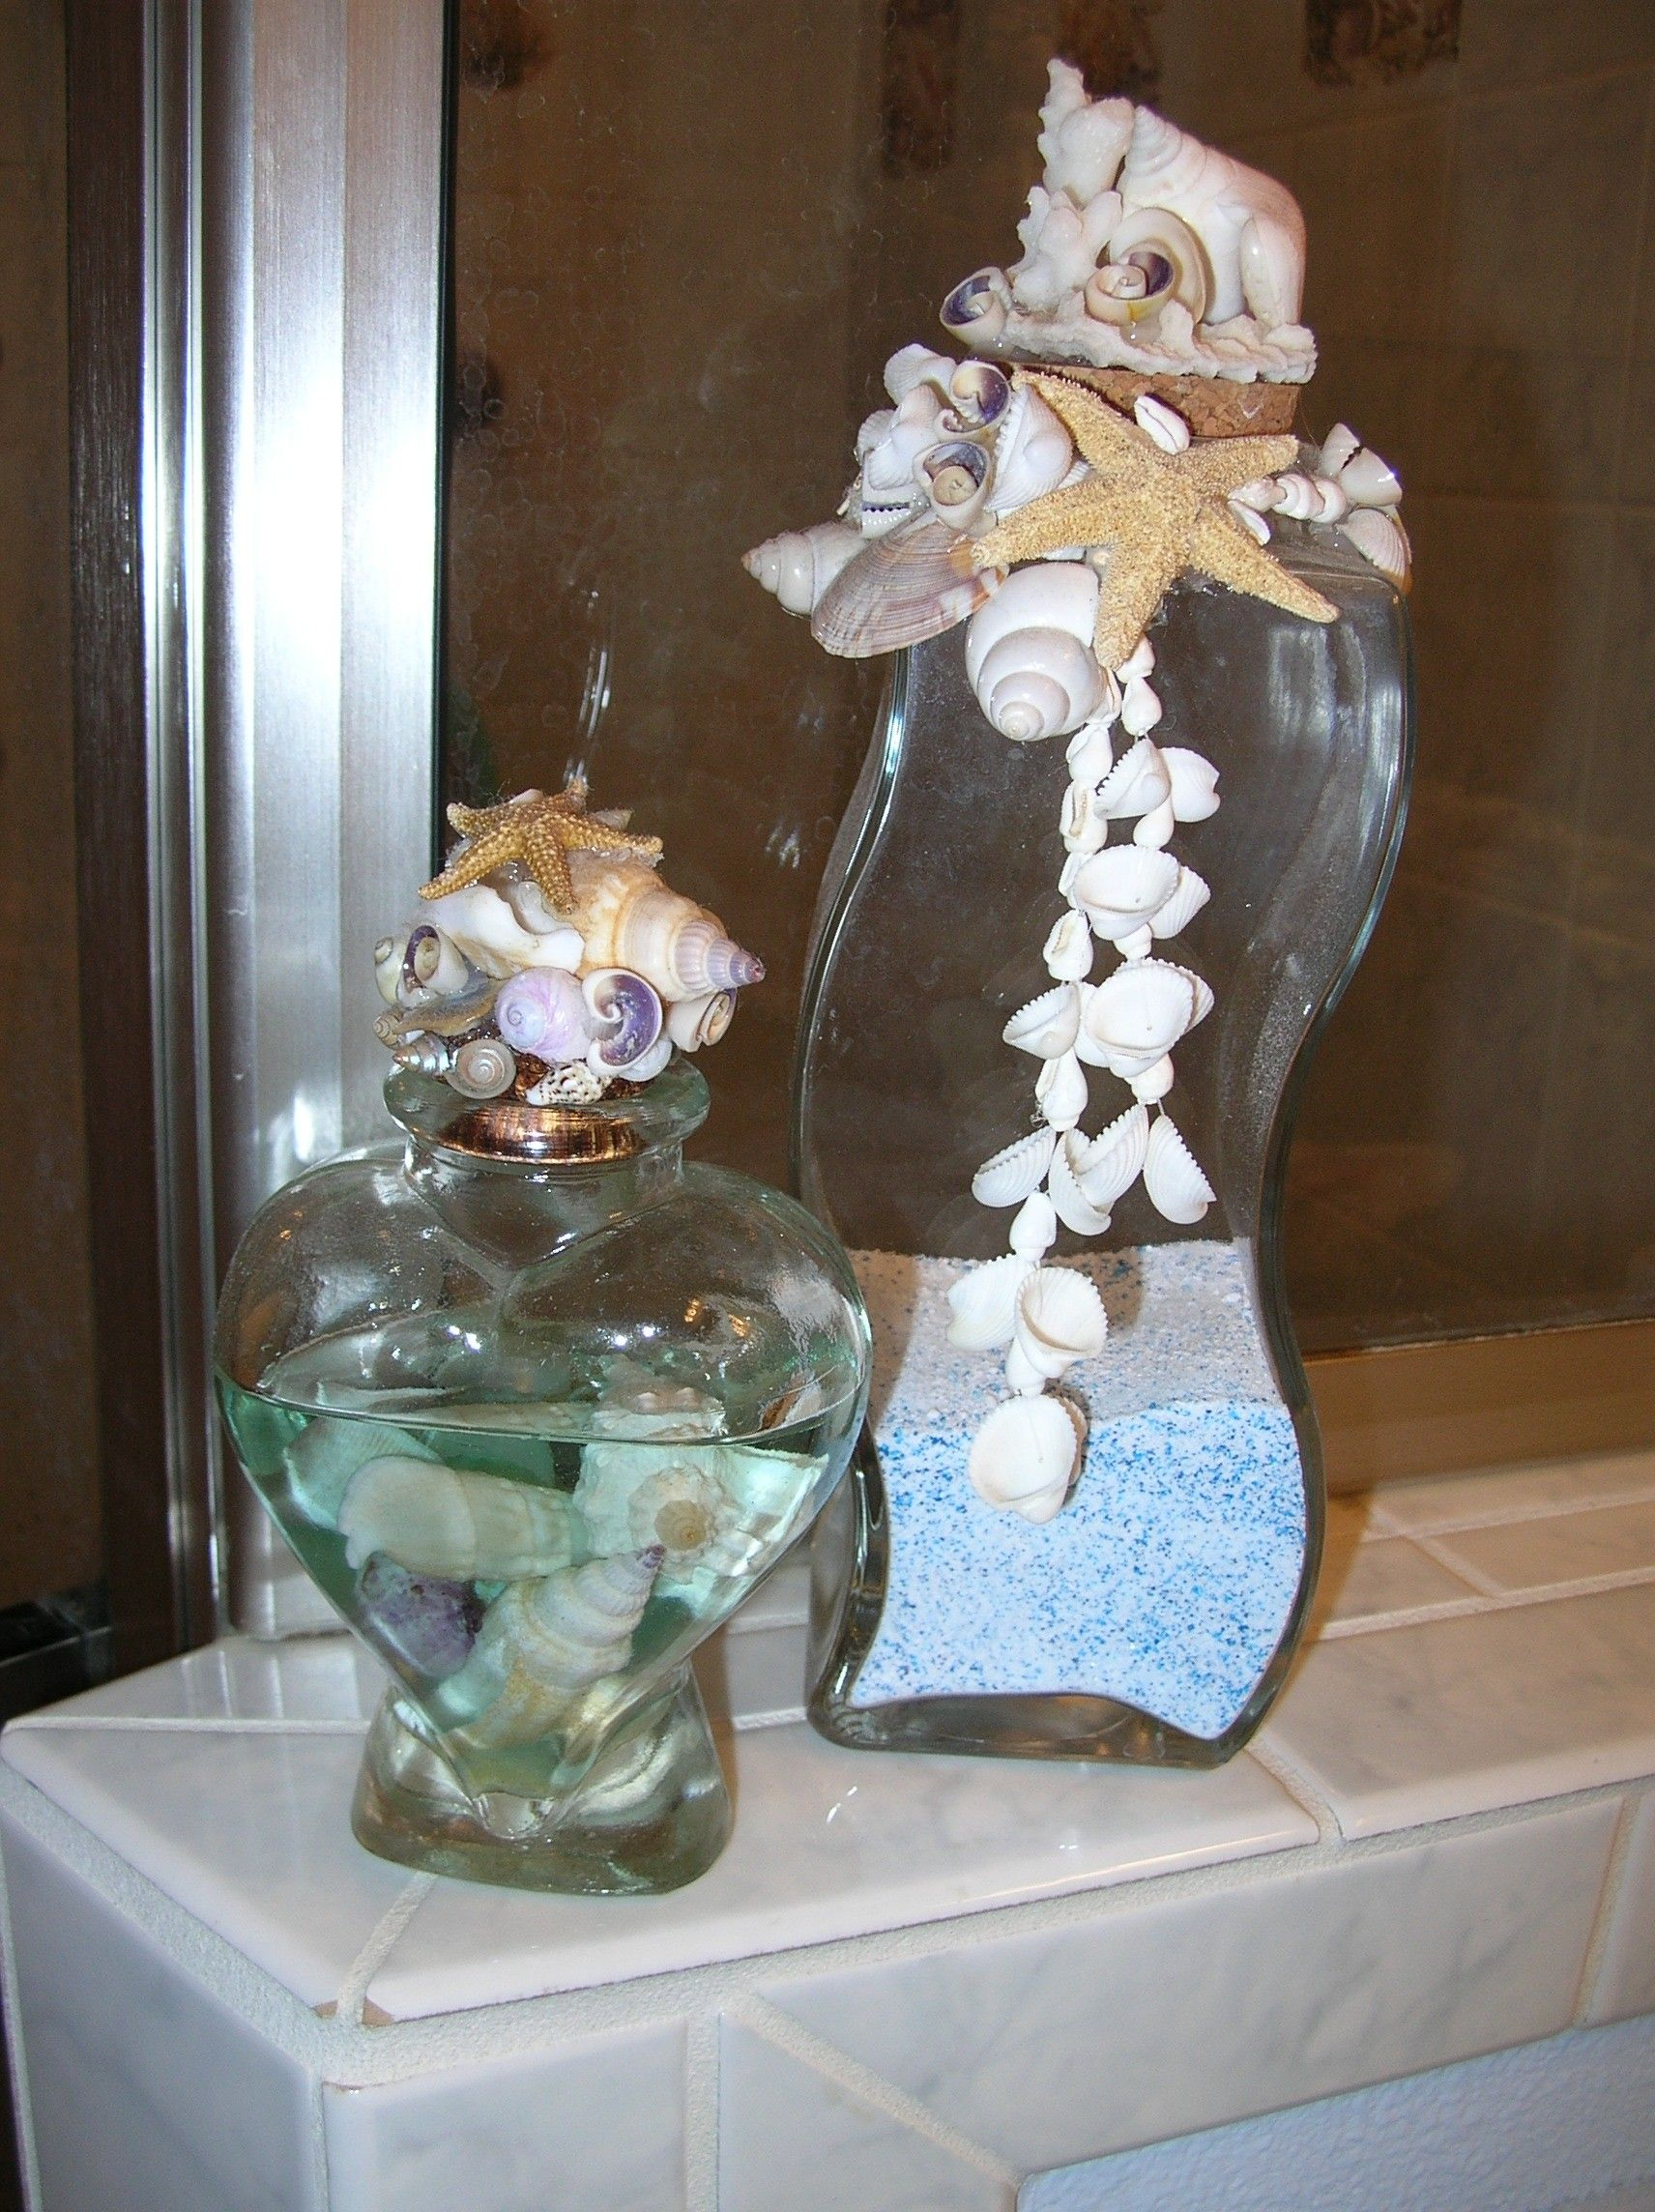 17 Best images about Seashell Baby Shower on Pinterest   Sea shells  Beach  party and Bathroom beach. 17 Best images about Seashell Baby Shower on Pinterest   Sea